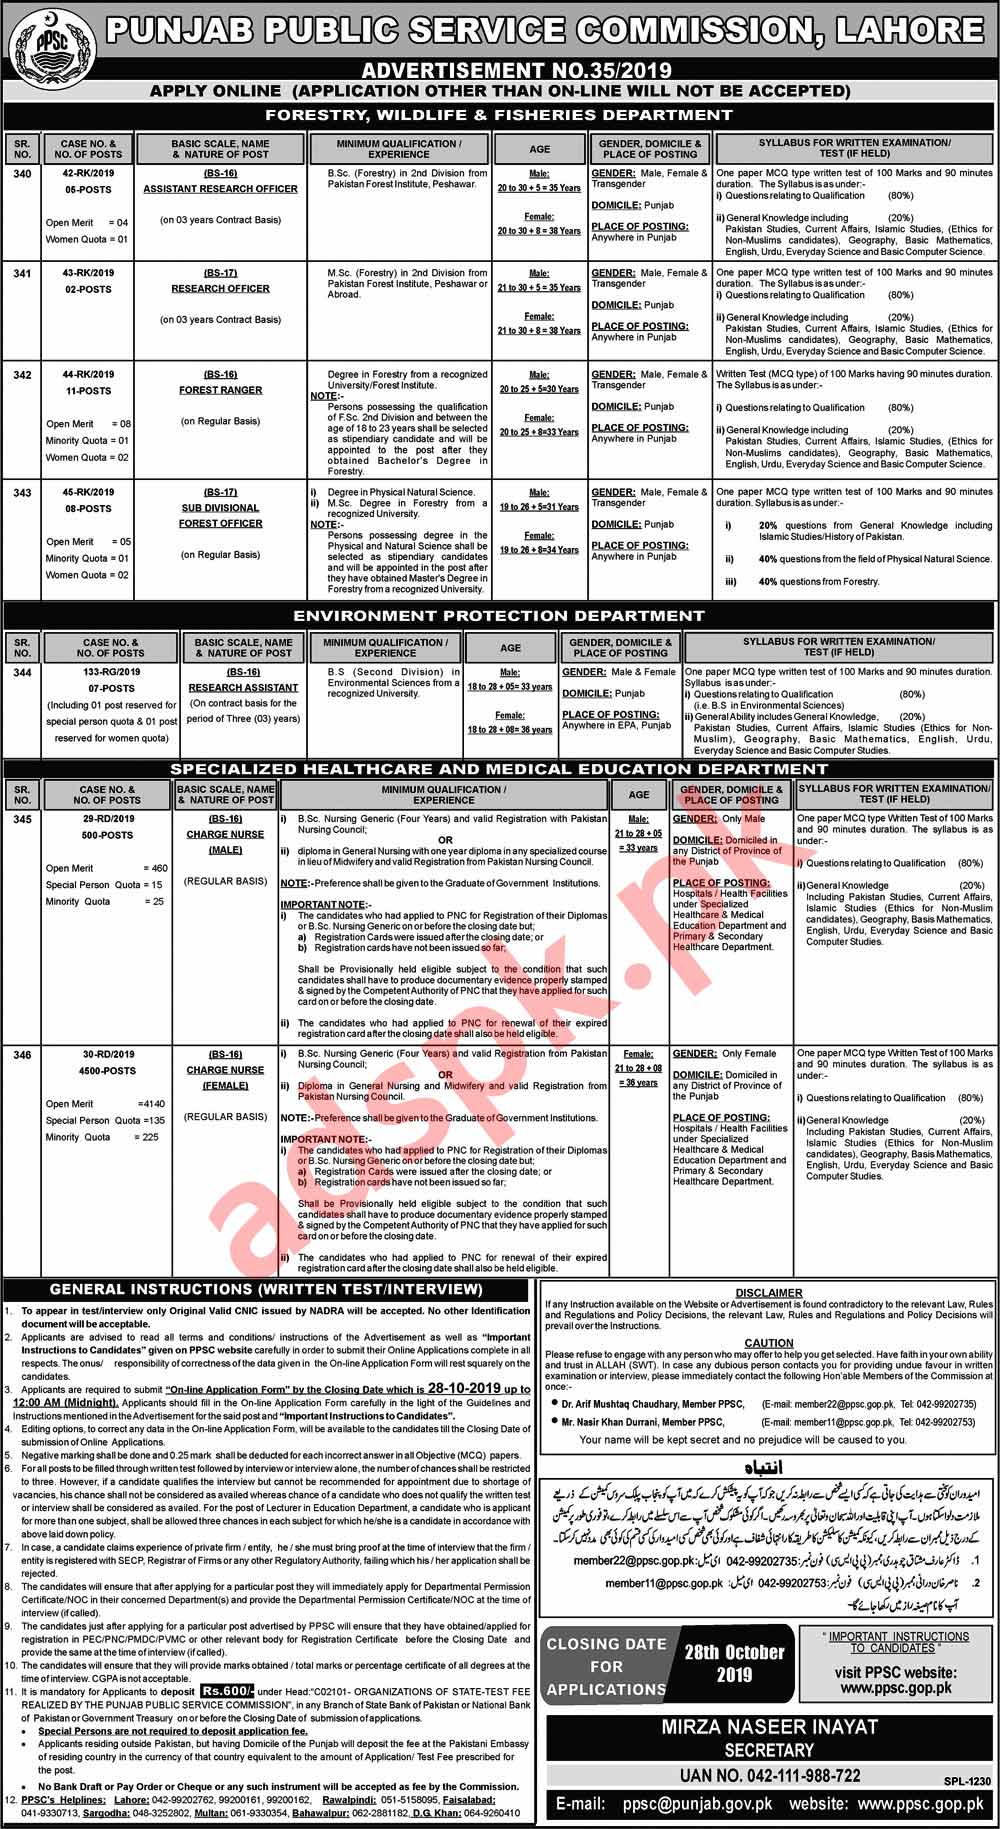 5000 Charge Nurses Jobs PPSC Ad No. 35-2019 Jobs Written Test MCQs Syllabus Paper for Charge Nurse (Male-Female) Forest Ranger Sub Divisional Forest Officer Research Assistant Jobs Application Form Deadline 28-10-2019 Apply Online Now